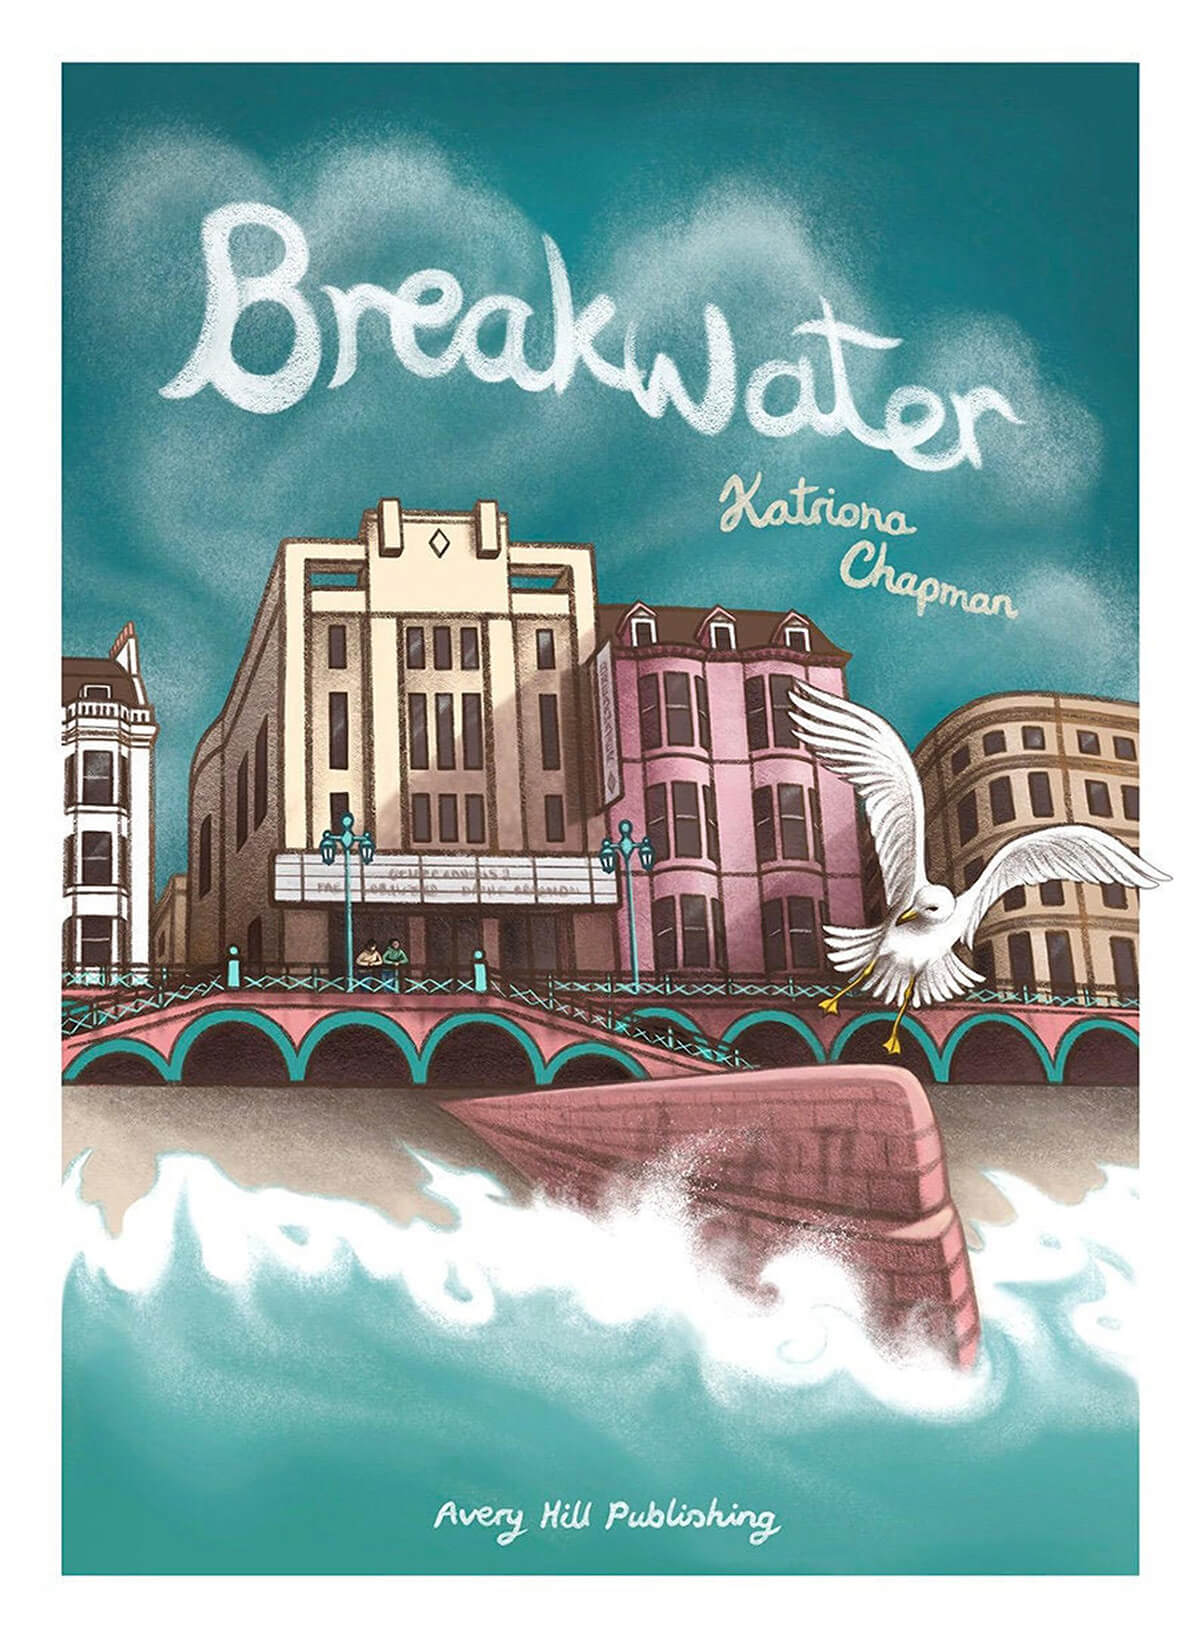 The cover of Breakwater: the foreground of the cover is a breaking wave against a rock pier, behind which is a boardwalk with buildings, including a movie theatre. Two people lean on the boardwalk's railing in front of the theatre. Soft clouds populate the blue sky, only slightly darker than the ocean. The words 'Breakwater' and 'Katriona Chapman' are written in cursive, like skywriting in clouds, in the sky.